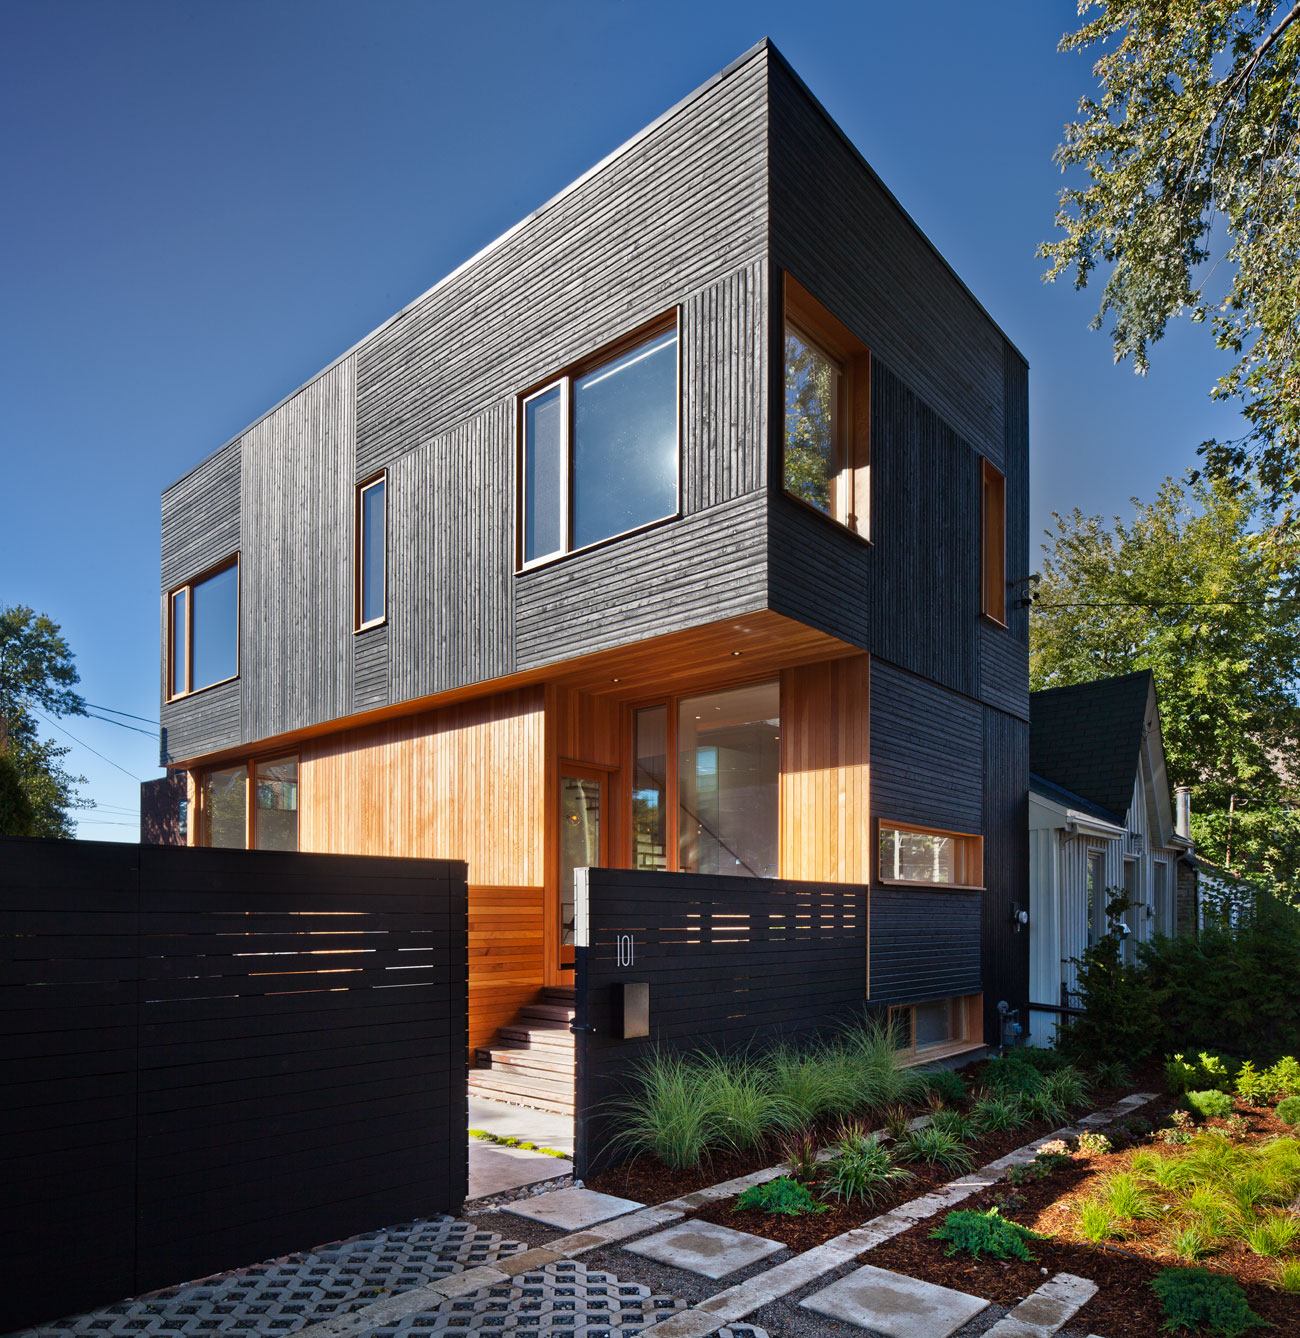 Black Wood Cladding Toronto Designlines Black Timber House Shou Sugi Ban House Charred Wood Kyra Clarkson Architect